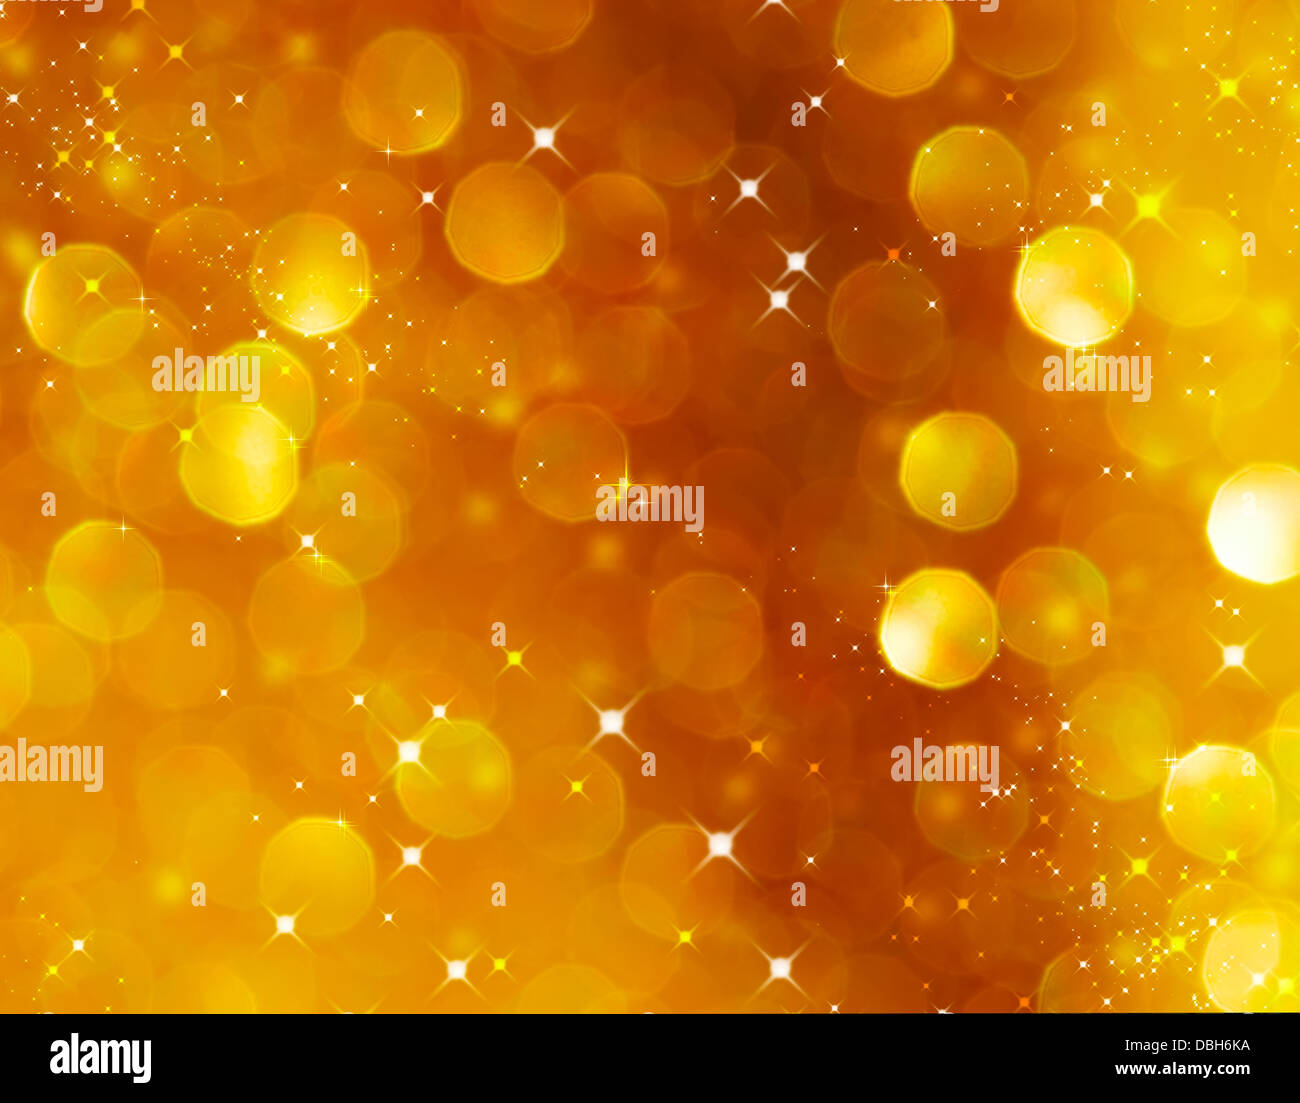 Christmas Glittering background. Holiday Gold abstract texture. Bokeh - Stock Image